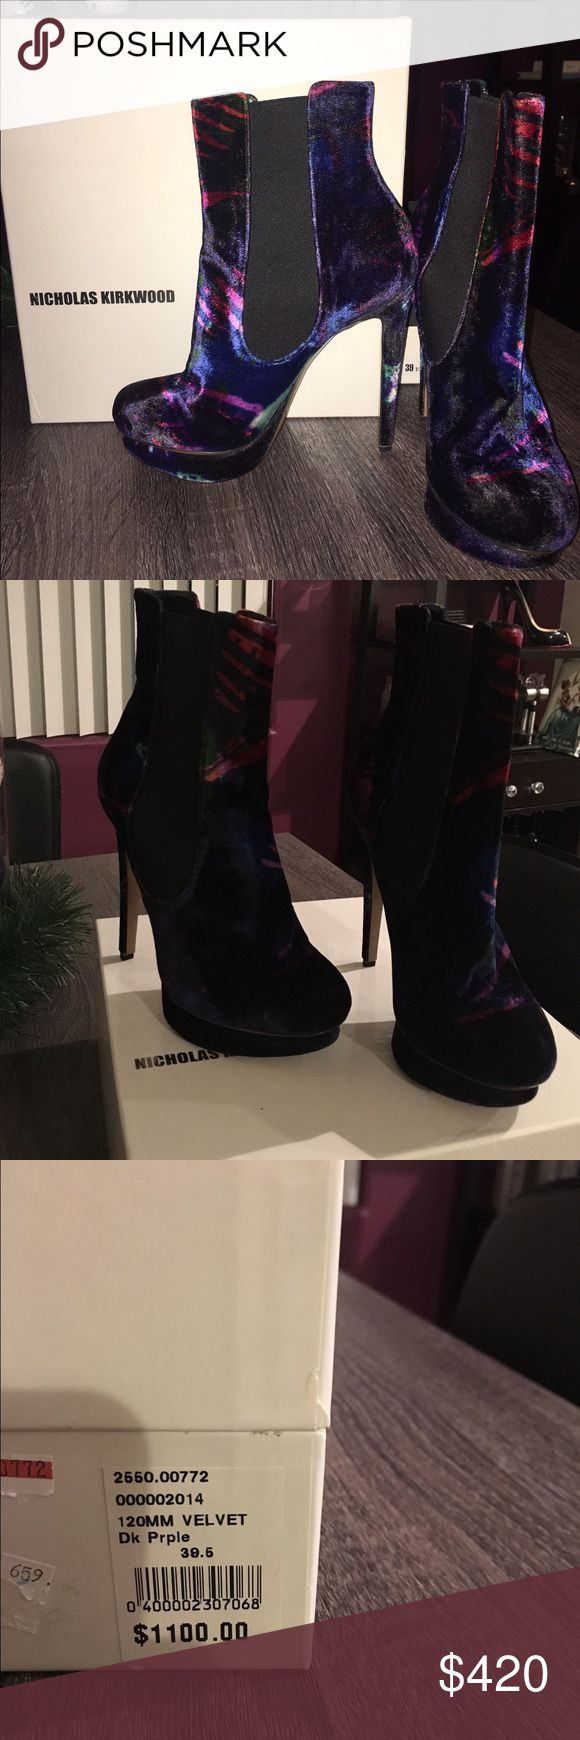 Nicholas Kirkwood velvet booties Great condition Nicholas Kirkwood velvet booties. They are 39.5 but I wear an 8-8.5 usually and they fit me great with socks. These are super stylish and cute!!! Nicholas Kirkwood Shoes Ankle Boots & Booties